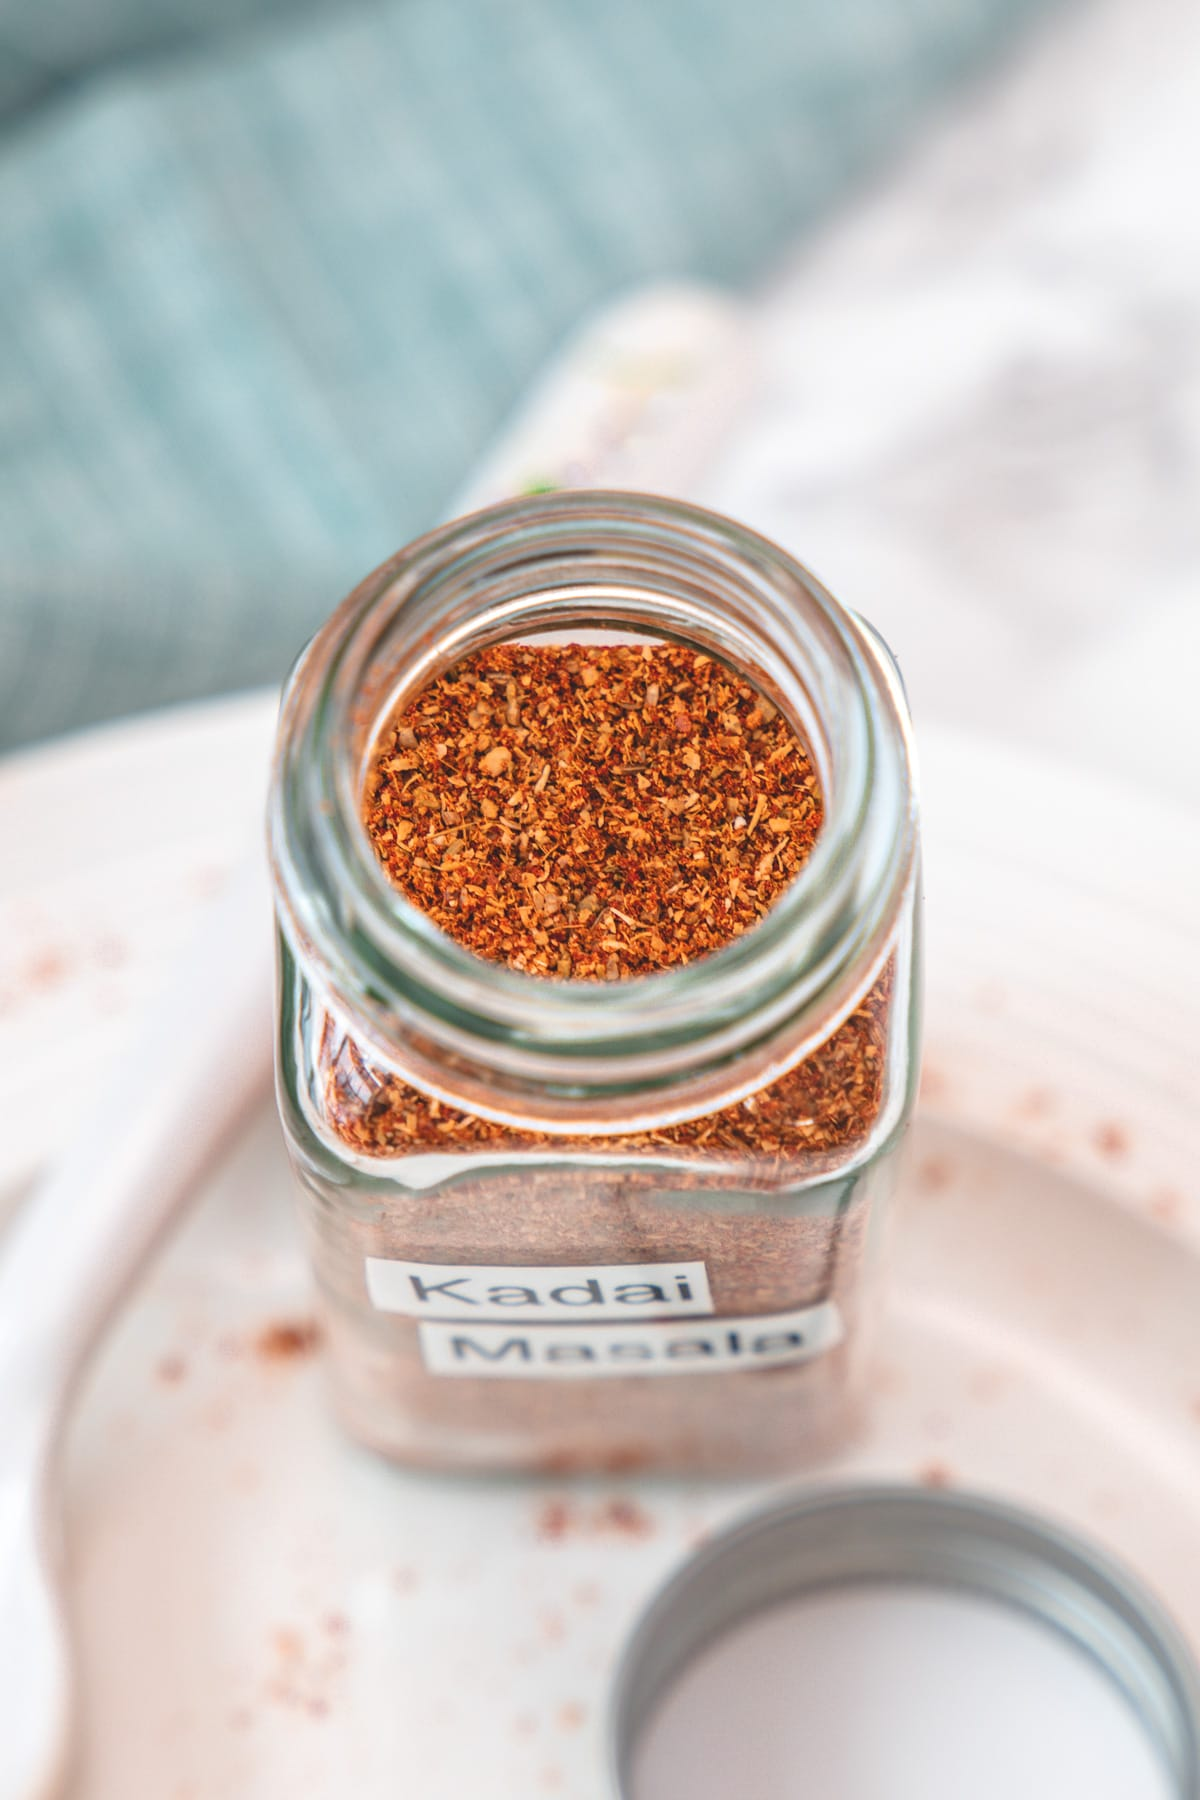 Showing the close up of kadai masala in the spice container.